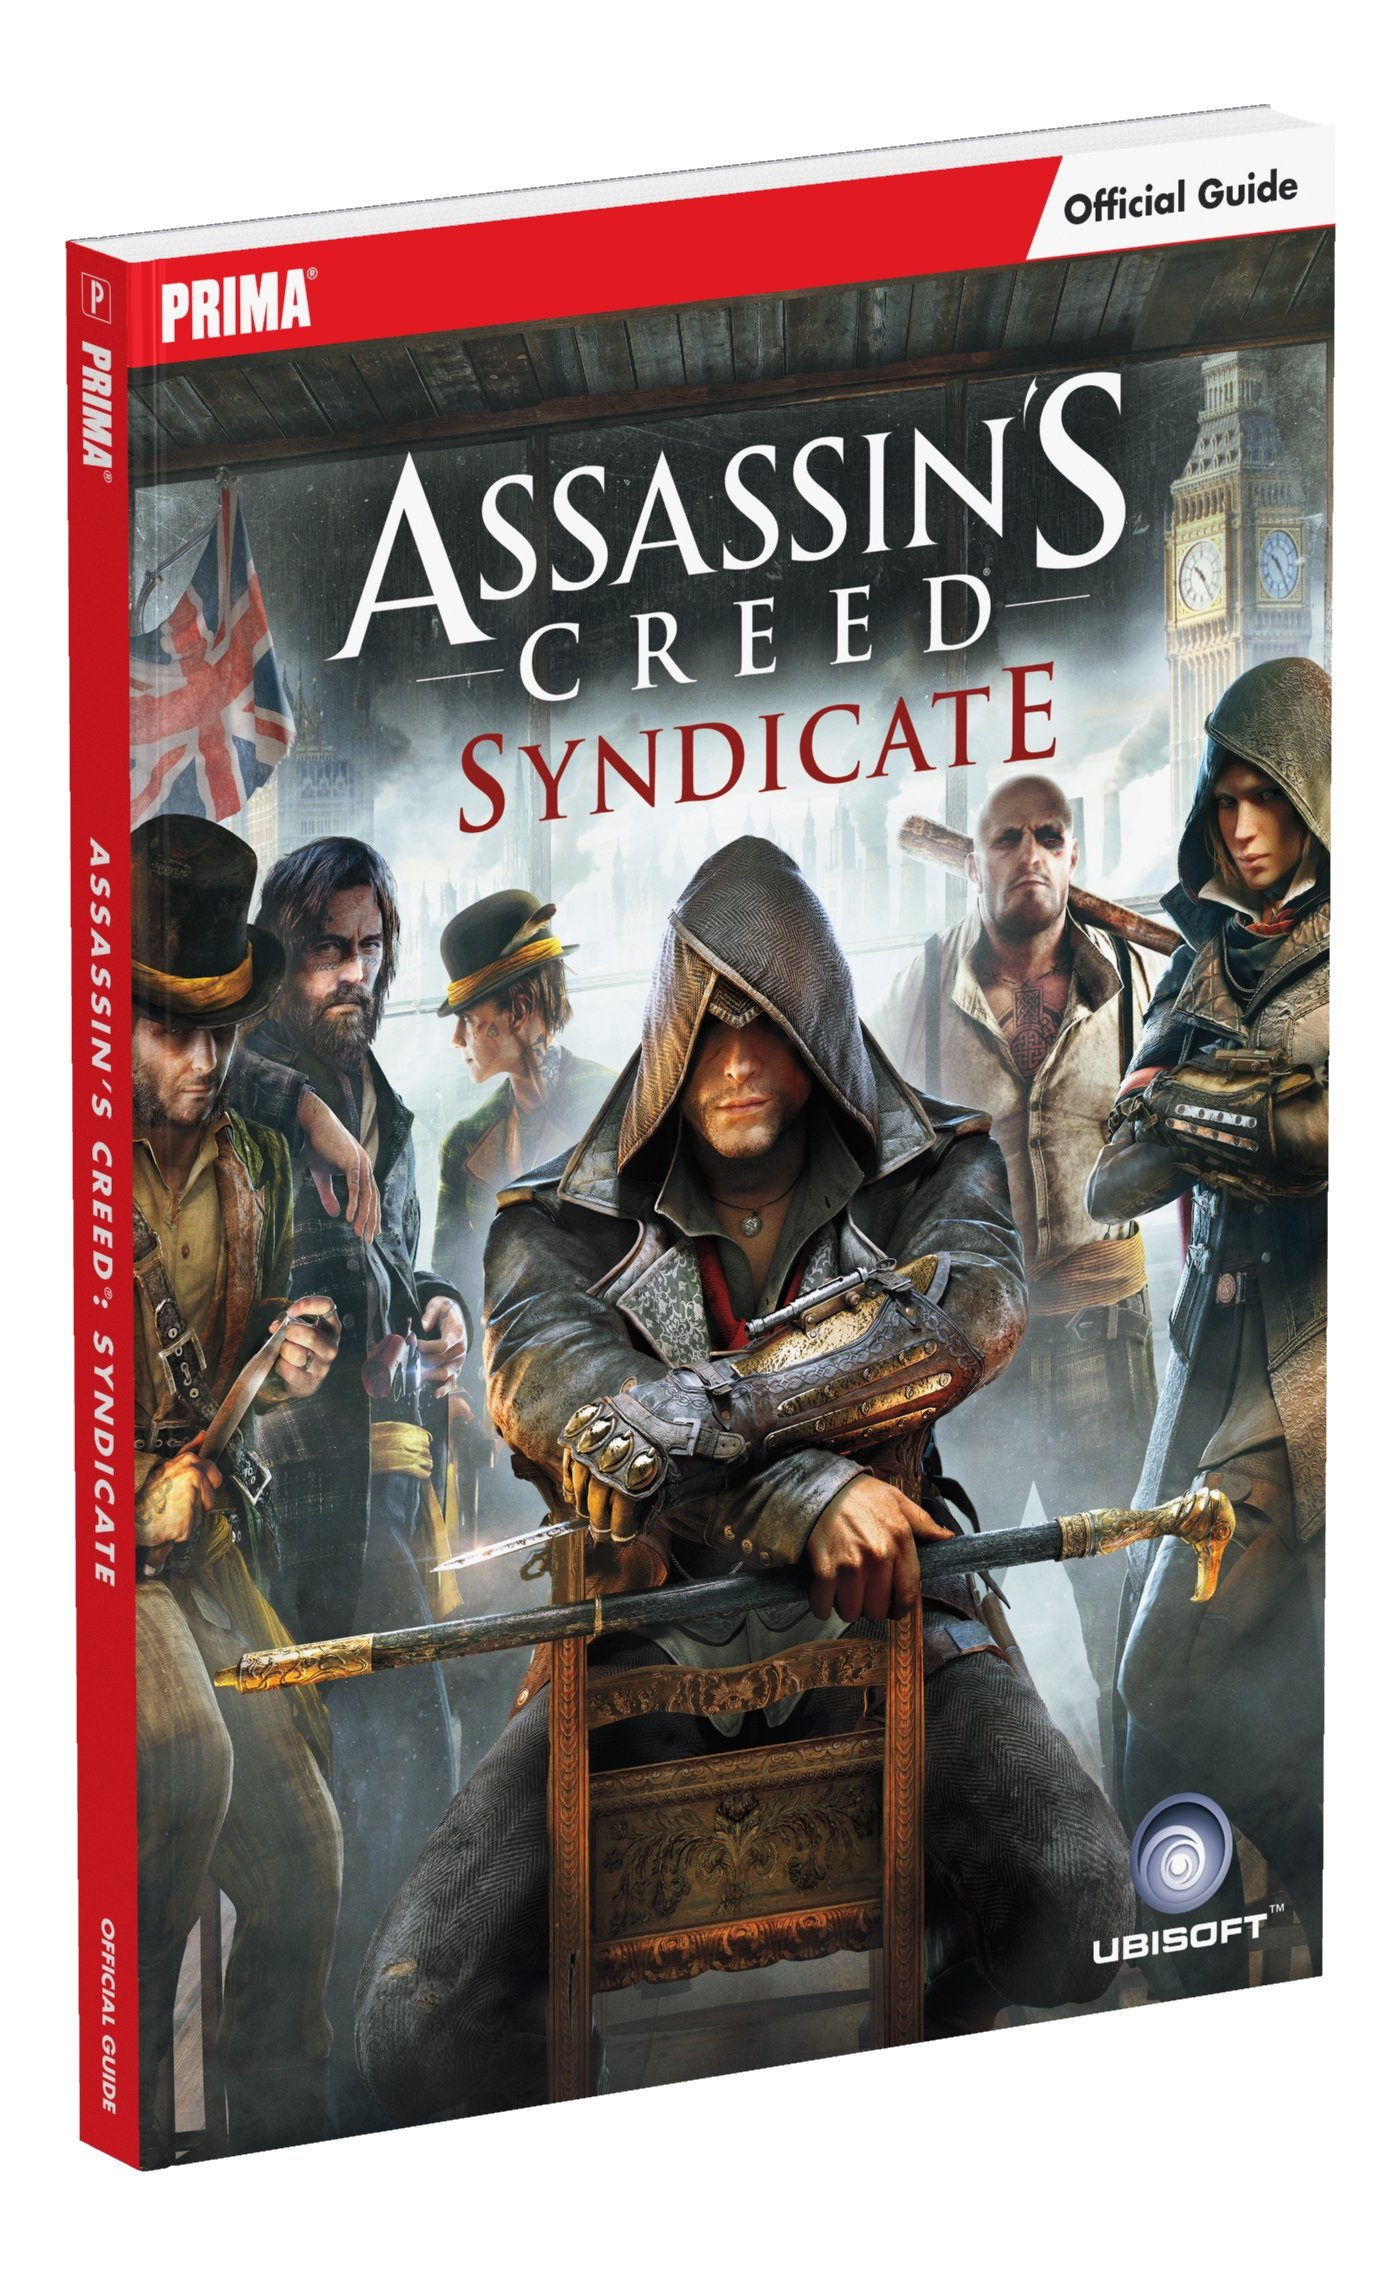 Download unity ebook free assassins creed